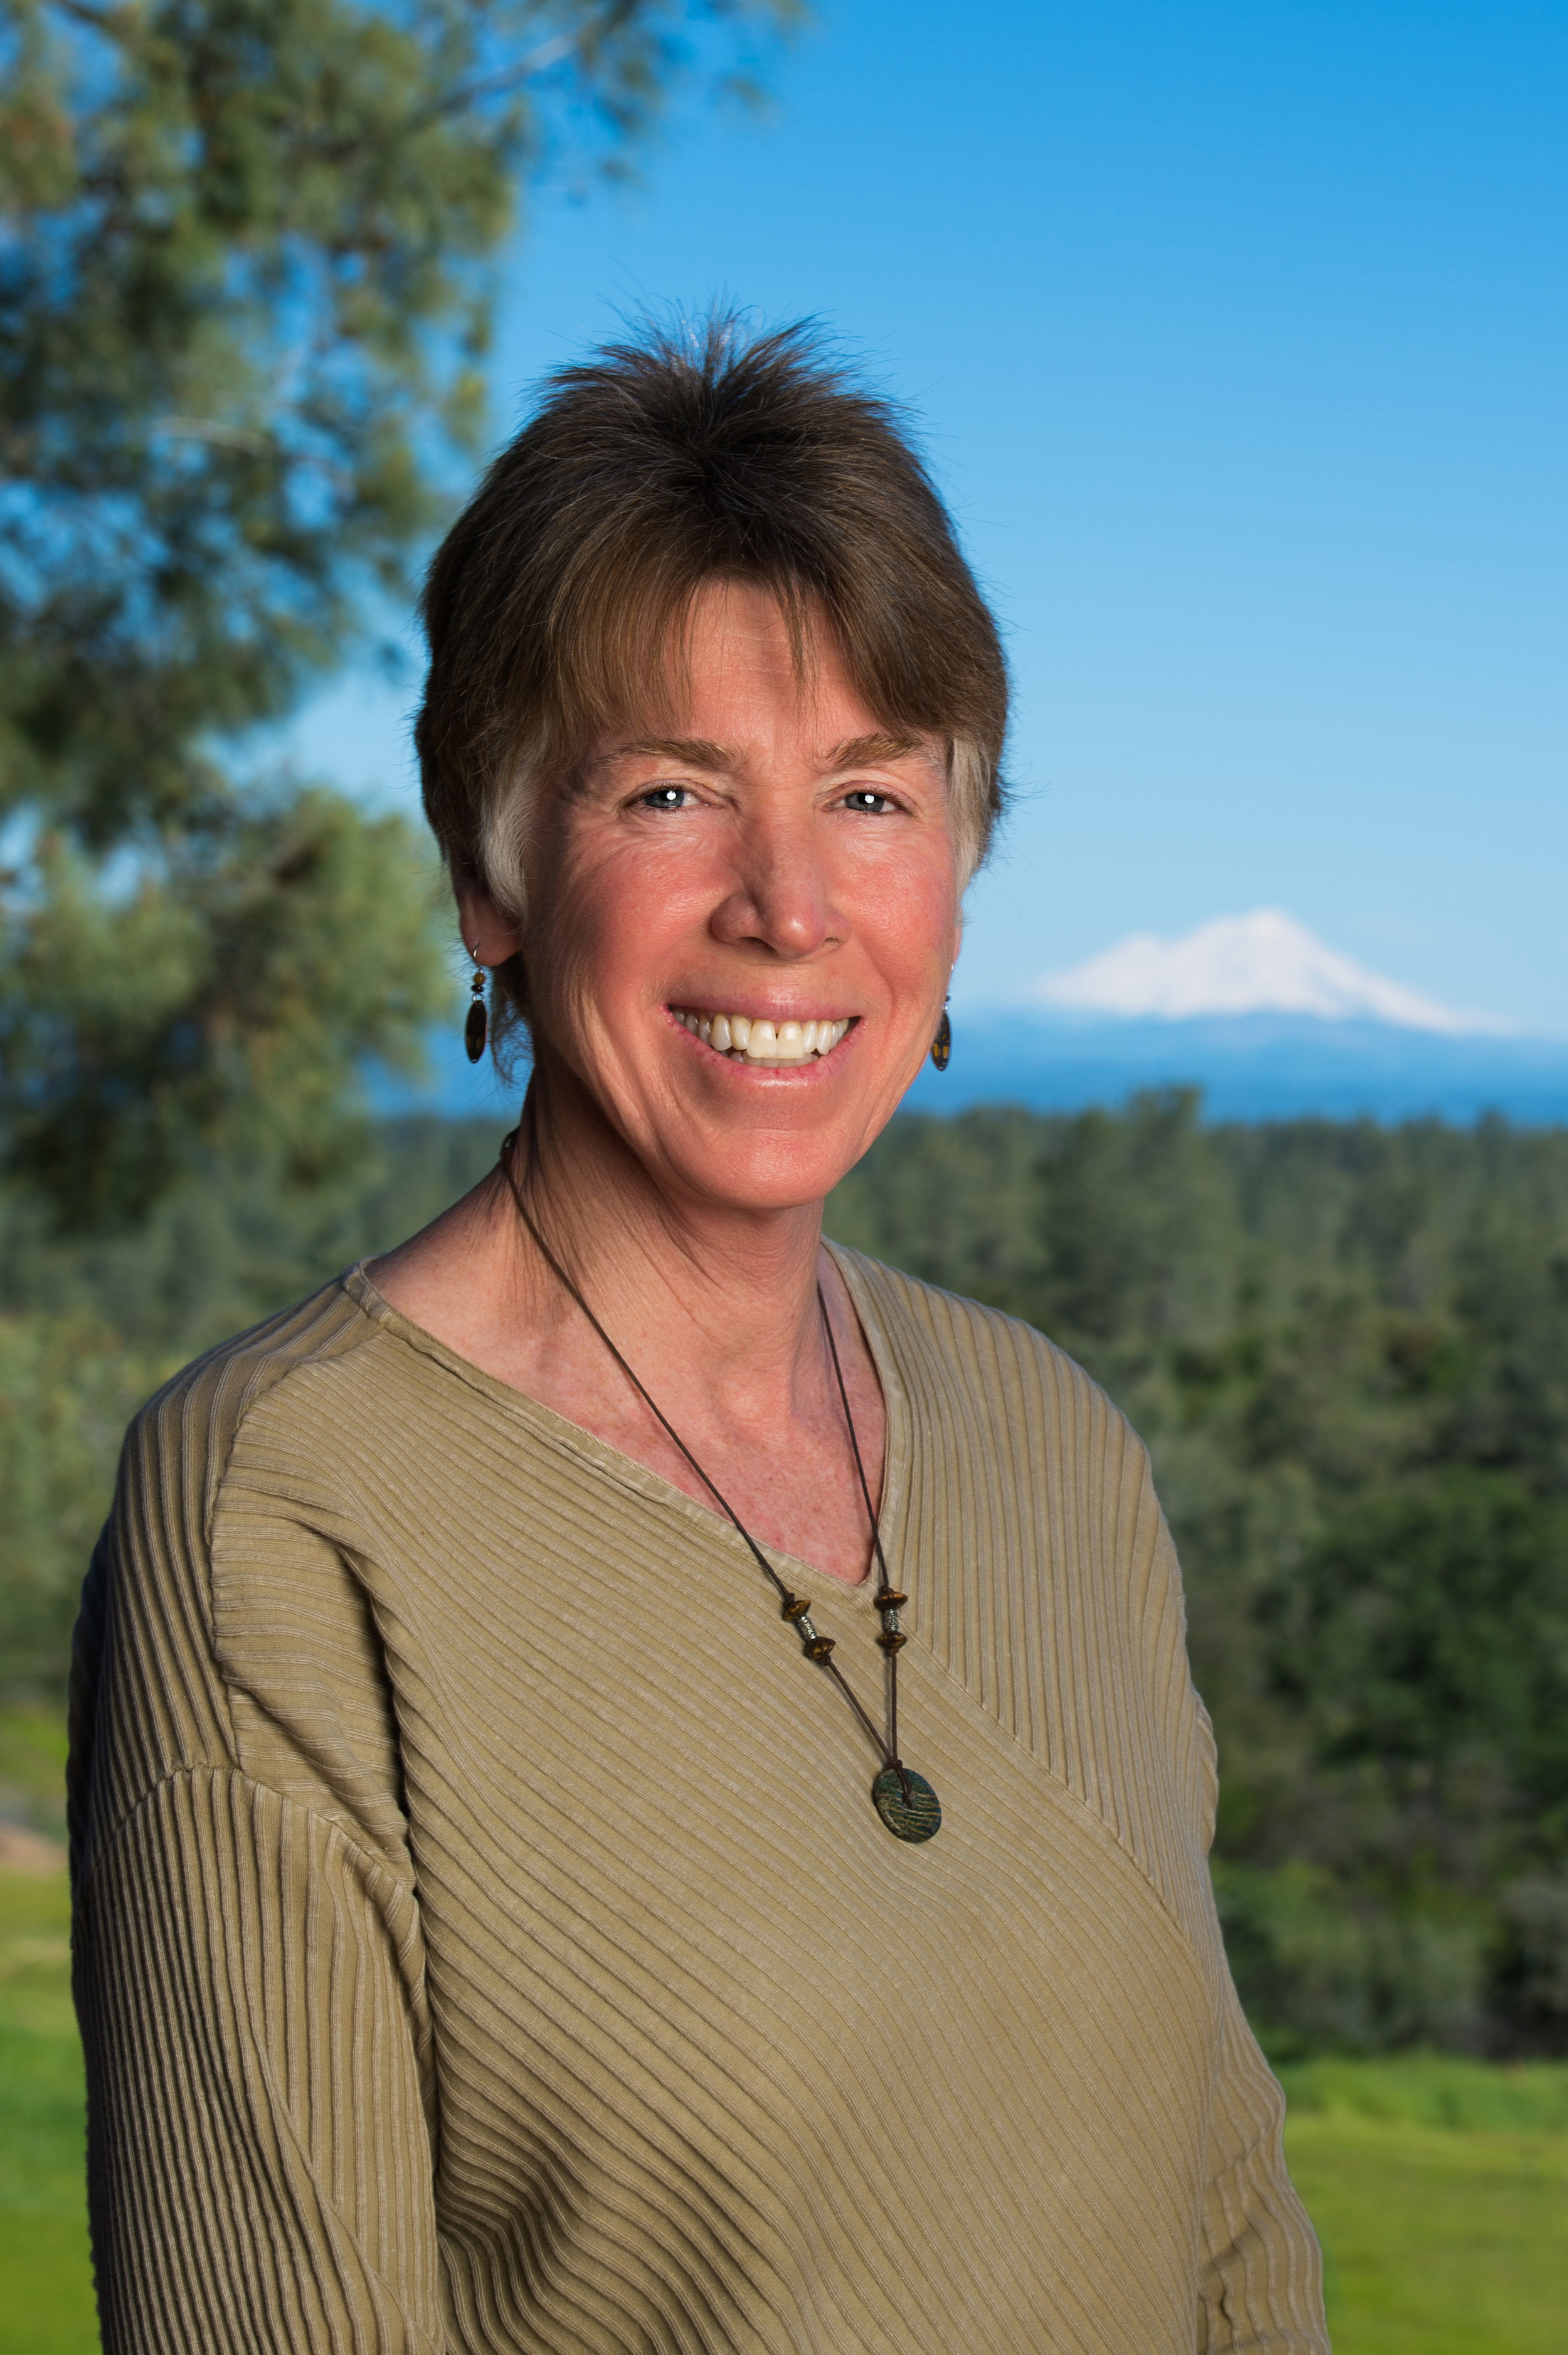 cathy ochs, founder impaa, and owner of  Redding integrative medicine in redding, ca.